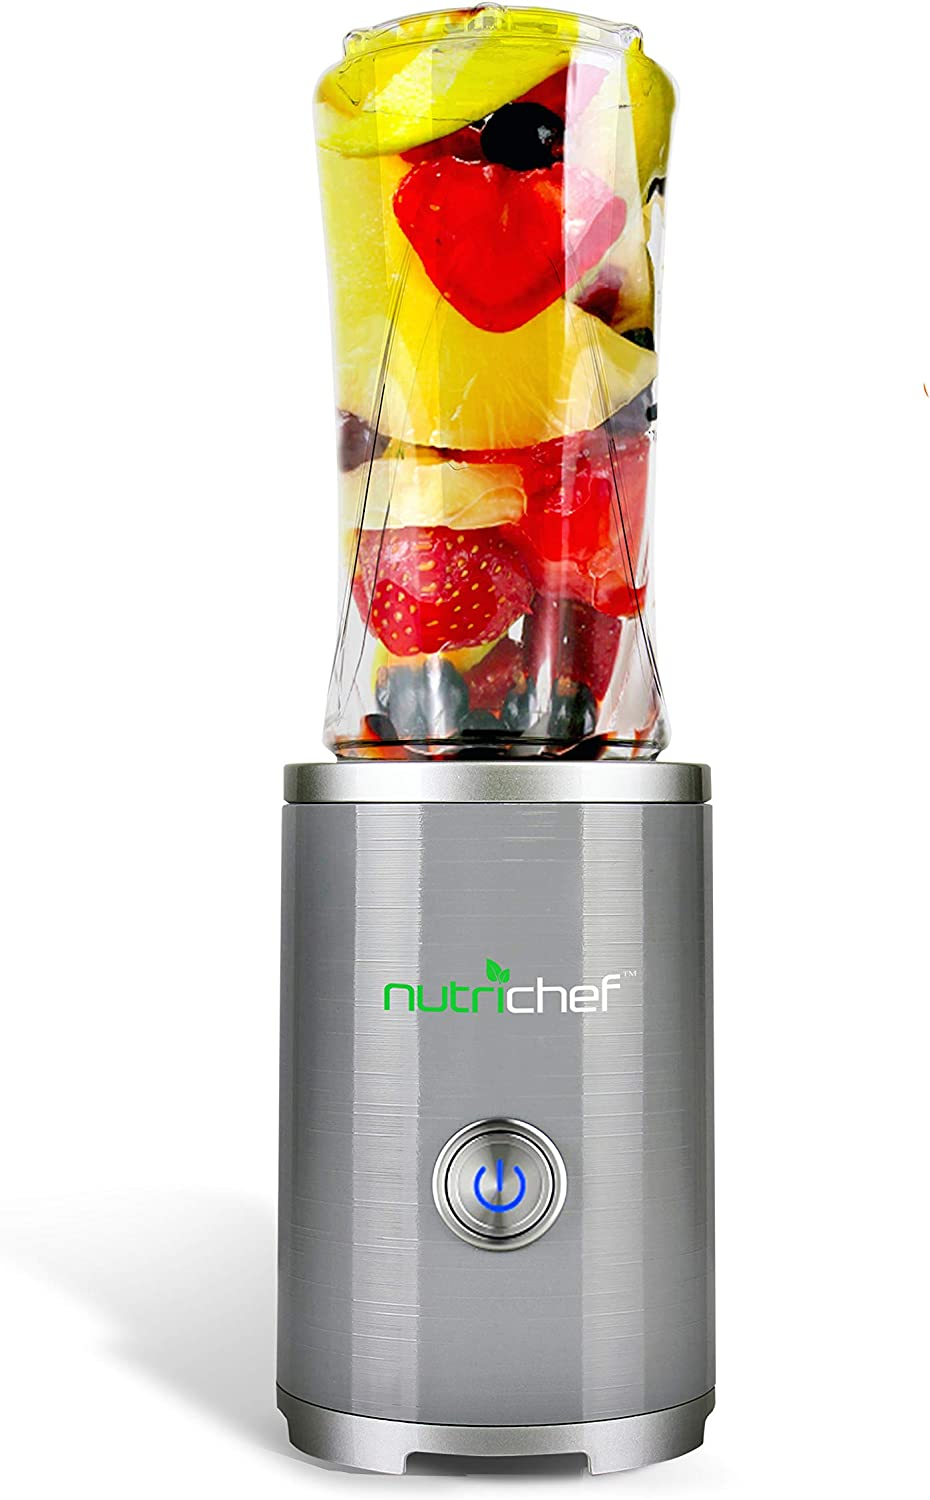 NutriChef Cordless Personal Portable Blender - Professional 300ml Wireless Travel Mini Blender, Electric Shaker Bottle Protein Shakes/Smoothies Maker w/Built-in Rechargeable Battery - NCBL100RC